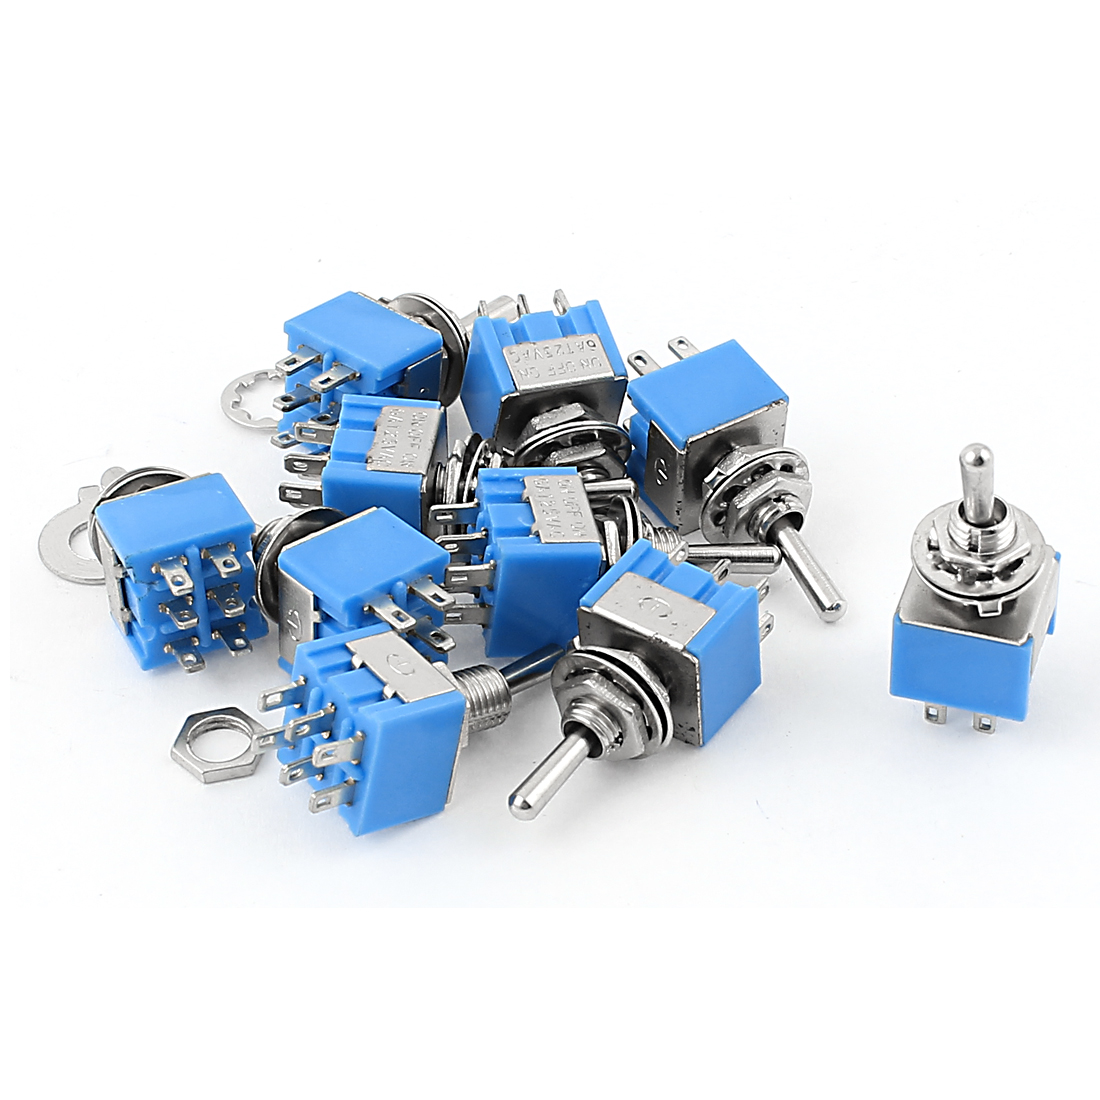 10Pcs AC 125V 6A 6Pin 3 Positions ON-OFF-ON 6mm Thread DPDT Latching Mini Toggle Switch Blue